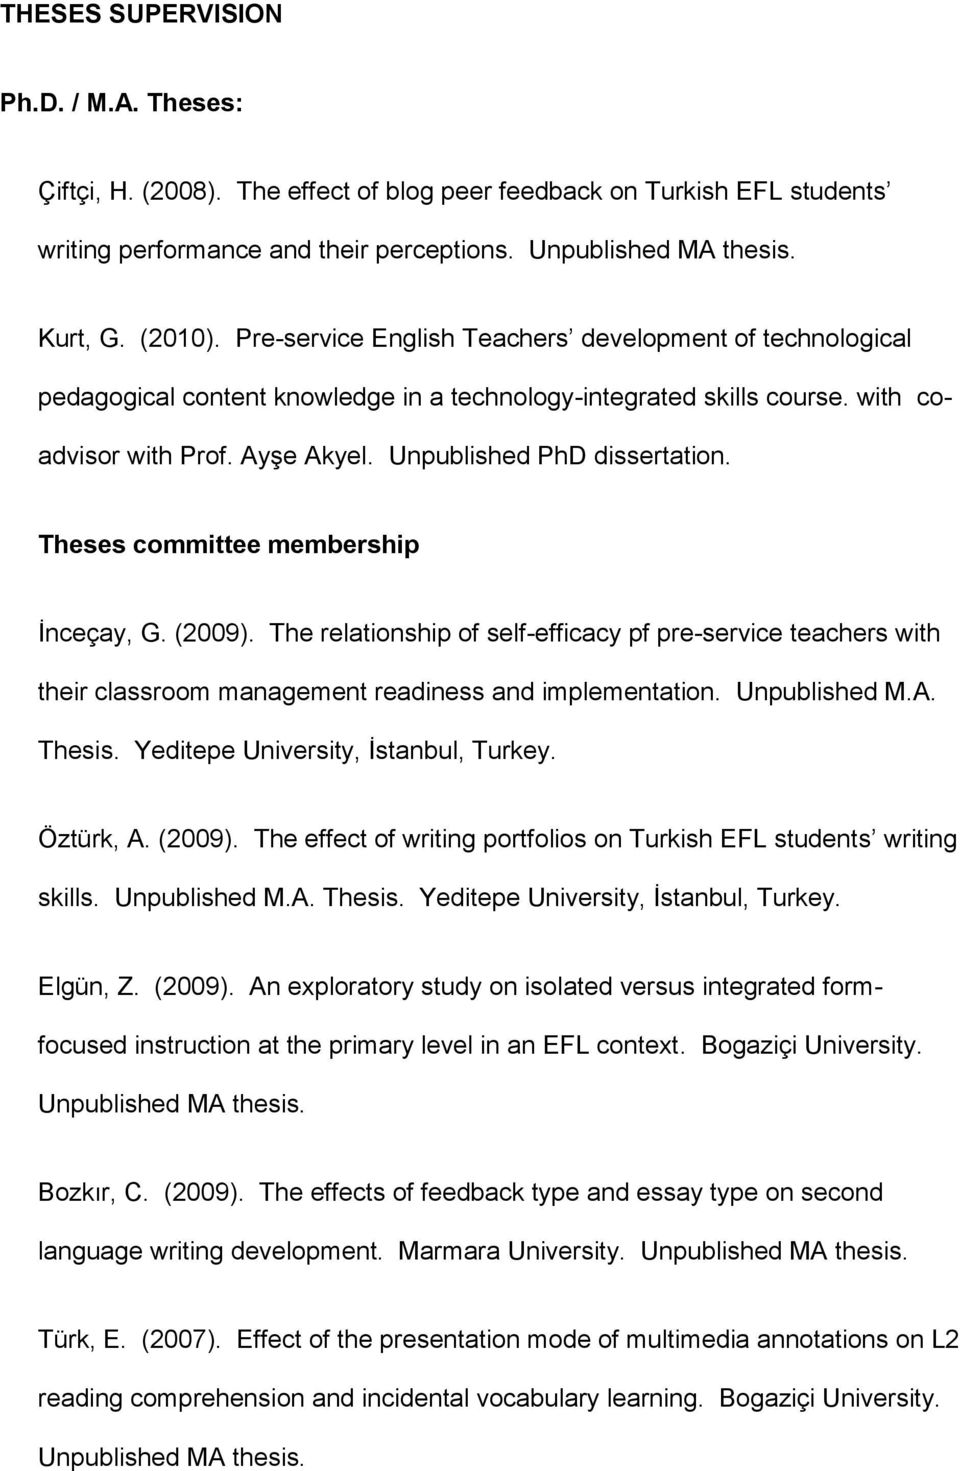 Theses committee membership İnceçay, G. (2009). The relationship of self-efficacy pf pre-service teachers with their classroom management readiness and implementation. Unpublished M.A. Thesis.